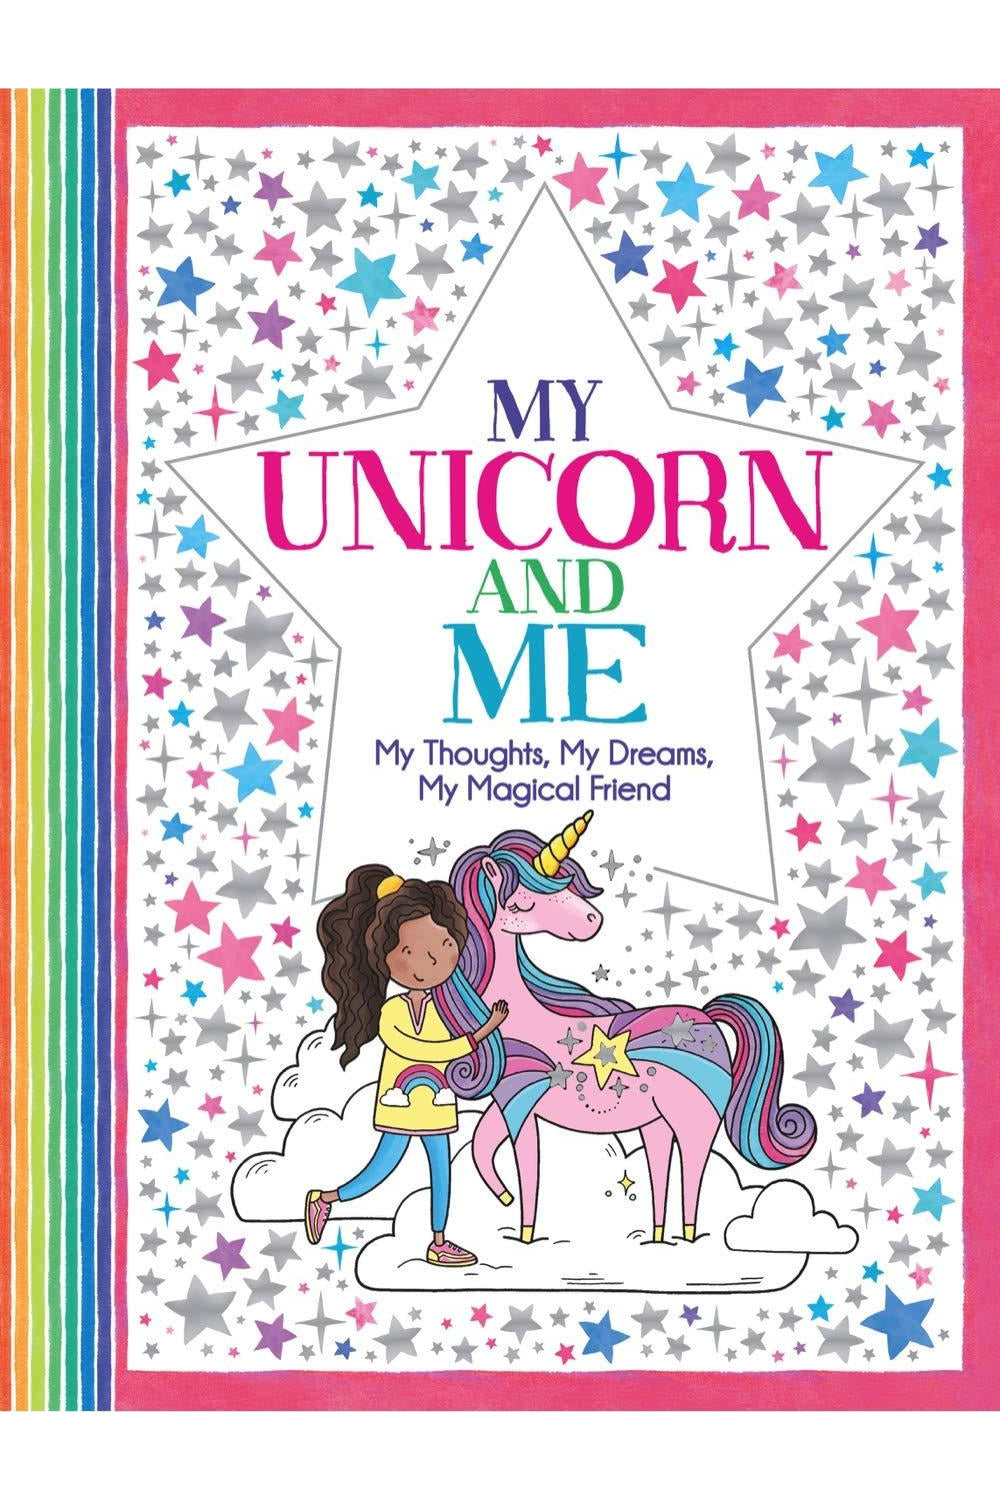 MY UNICORN & ME